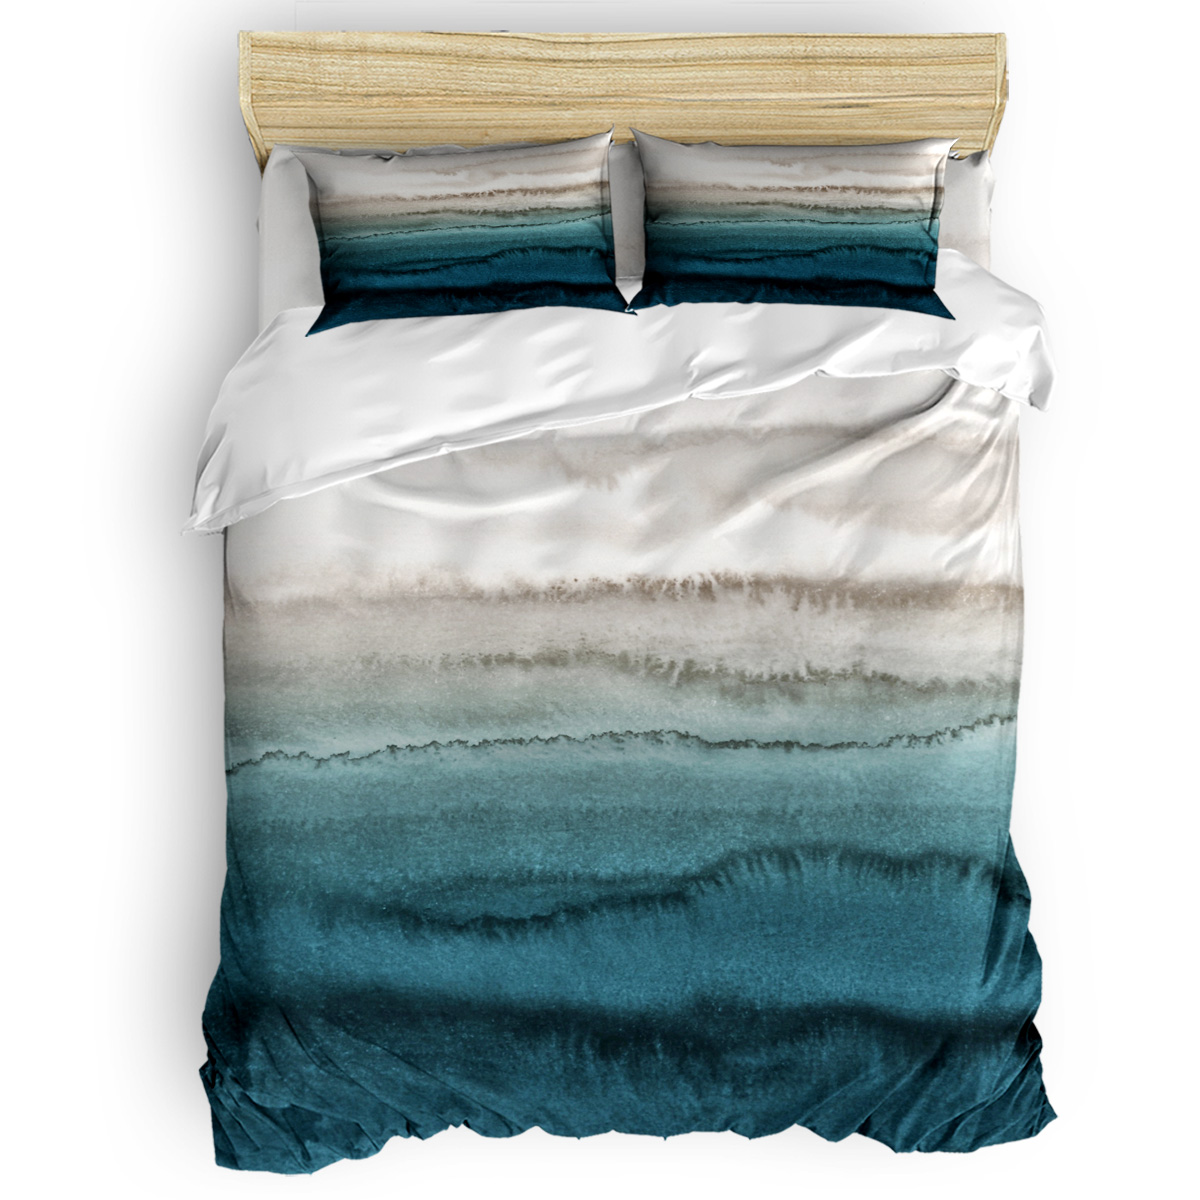 Within The Tides Crashing Waves Teal Duvet Cover King Size Queen Size Quilt Cover Set Bedclothes Comforter Single Bedding Sets Bedding Sets Aliexpress